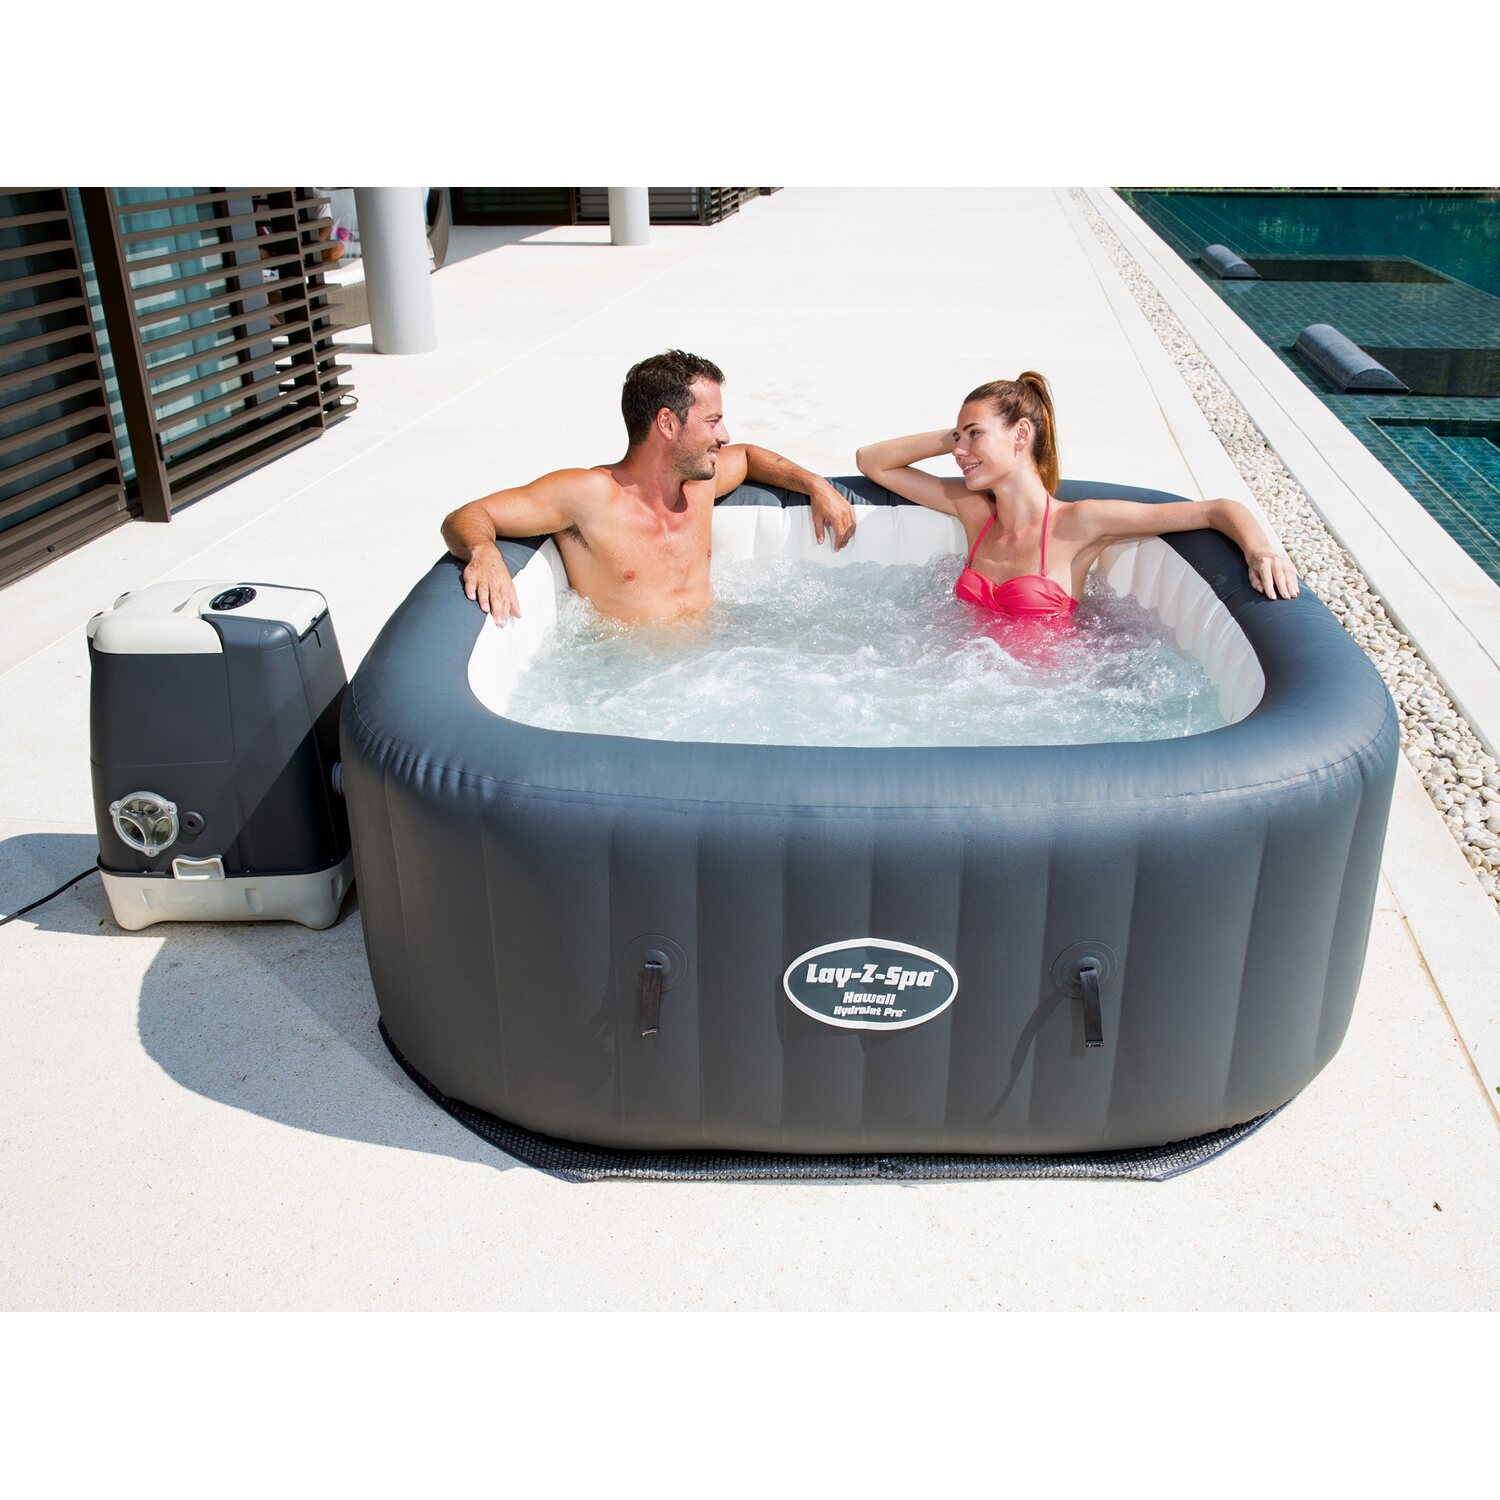 bestway whirlpool lay z spa hawaii hydrojet pro kaufen bei obi. Black Bedroom Furniture Sets. Home Design Ideas